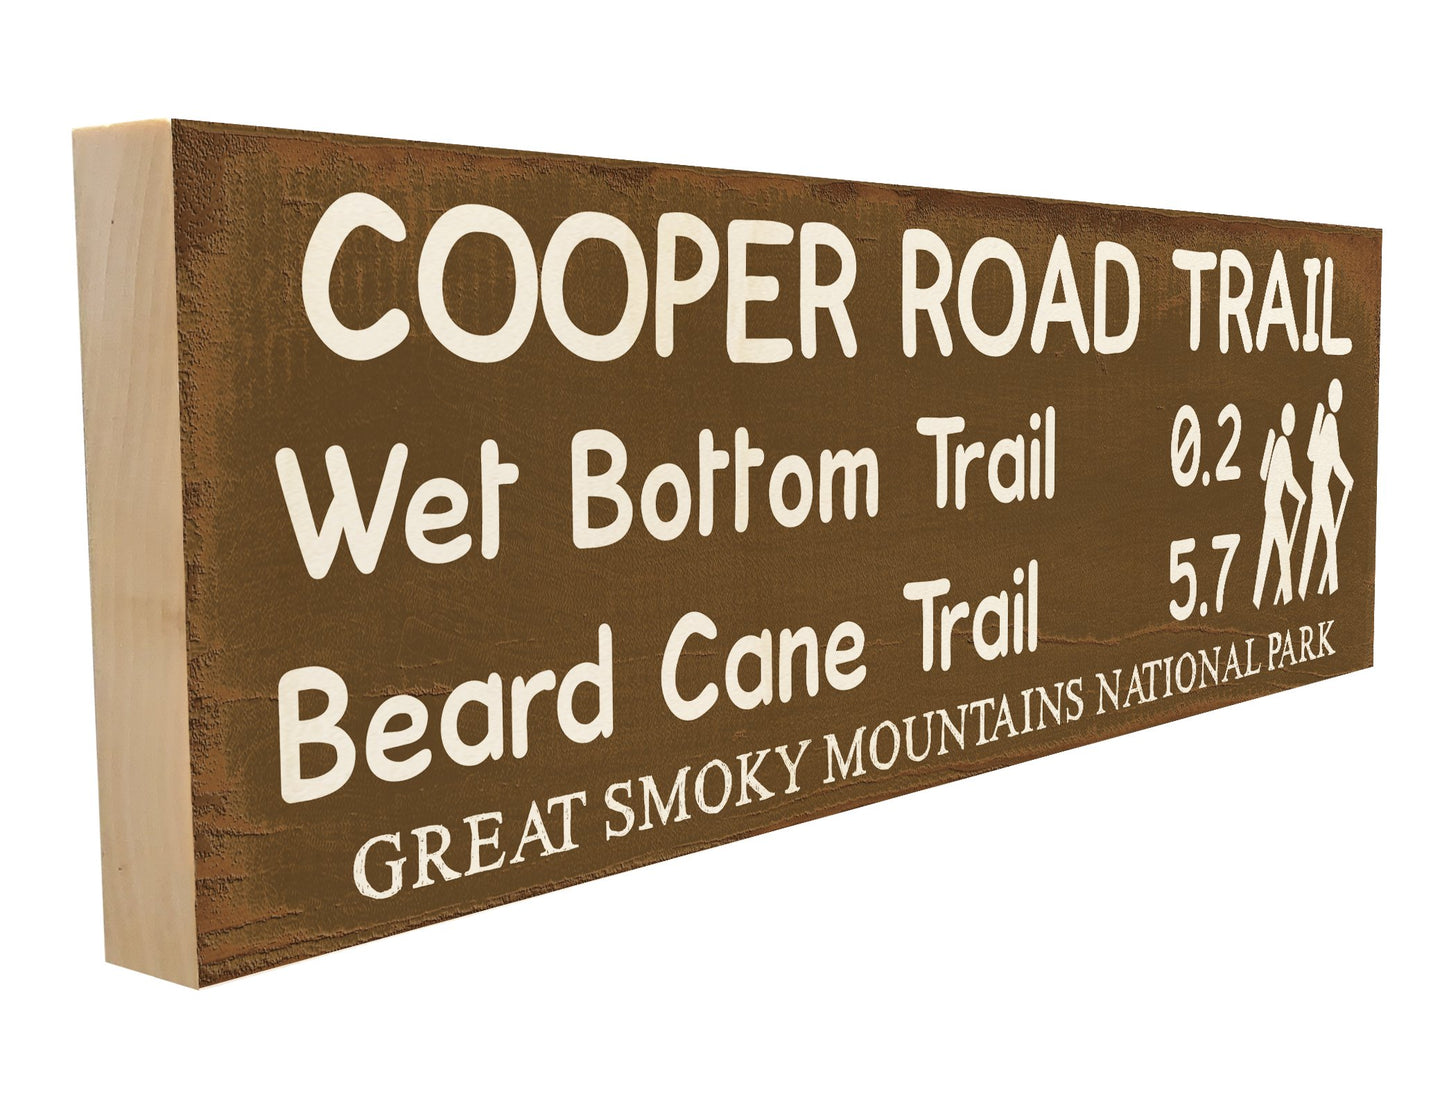 Cooper Road Trail. Wet Bottom Trail 0.2 Beard Cane Trail 5.7 Great Smoky Mountain National Park.